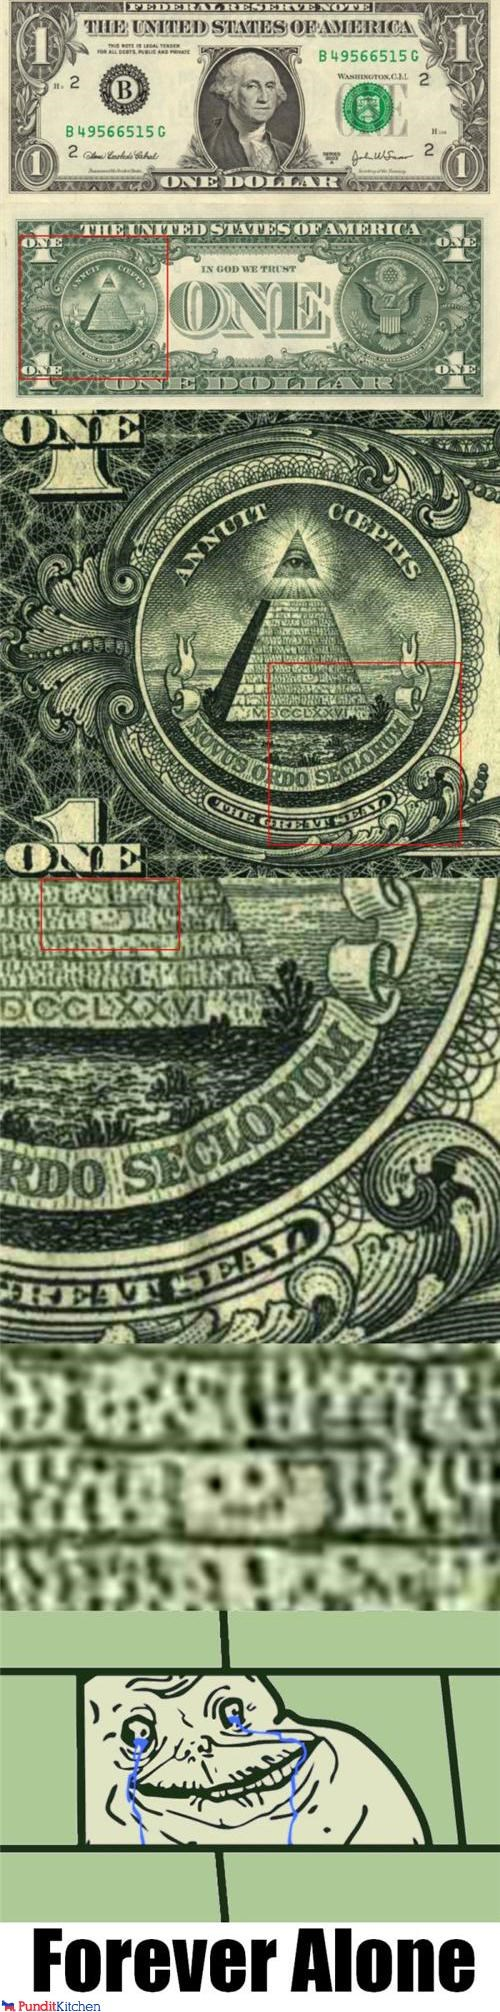 dollar forever alone george washington Memes money - 4486129664